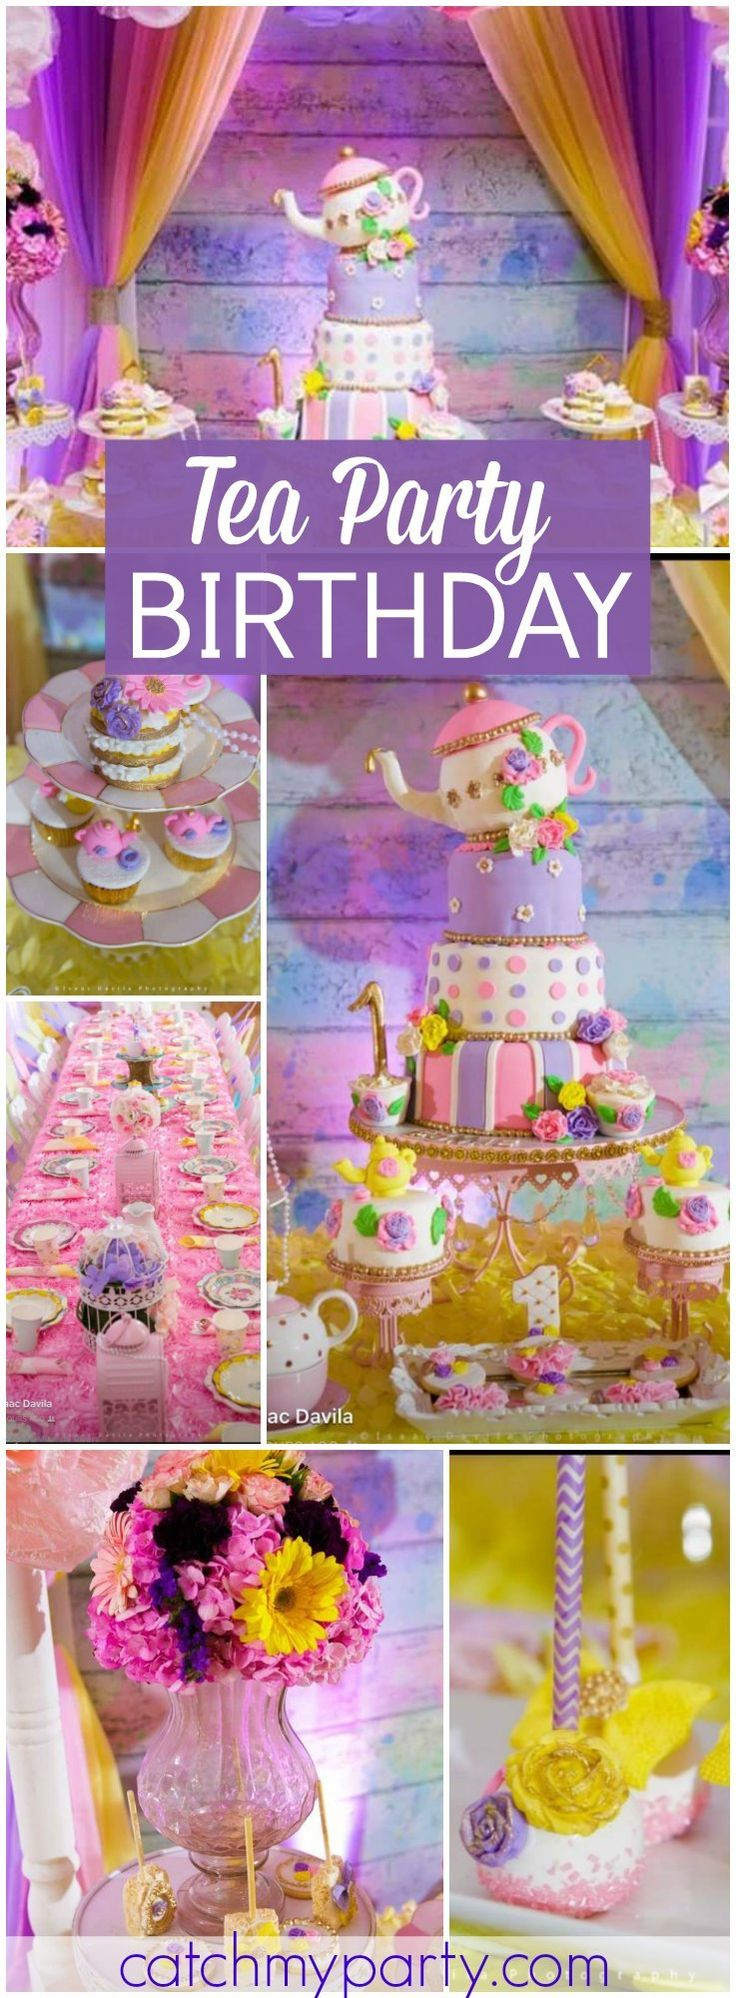 birthday activities for girls ; fe7f624d9c34e3f237239f4b9cefaa78--tea-party-theme-ideas-baby-girl-first-birthday-theme-ideas